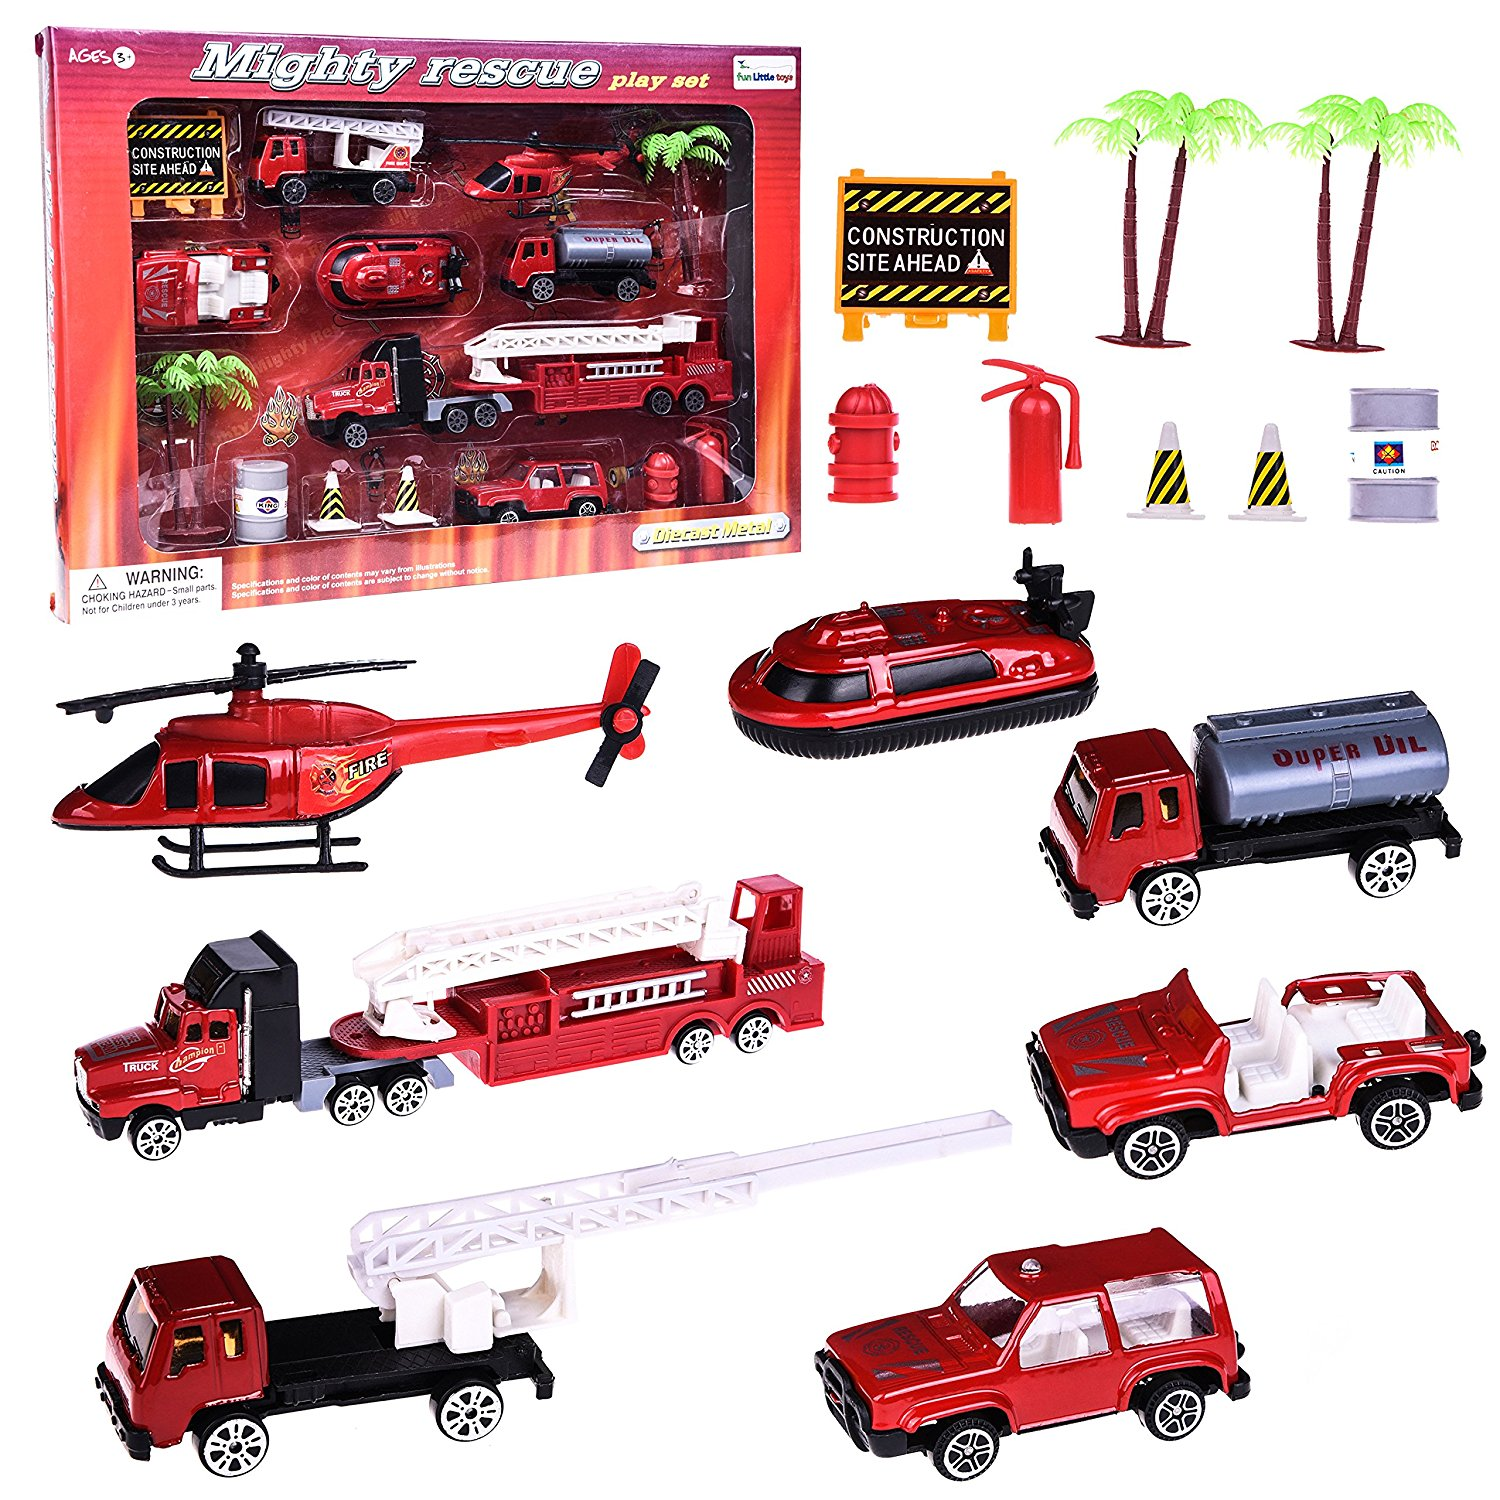 Cars Diecast Trucks Play Set Vehicles for Boys Mighty Fire Rescue Fire Toy Set for Kids Gift with Tow Truck, Truck, Jeep, Boat, Semi Truck, Helicopter and Accessories 15 PCs F-69